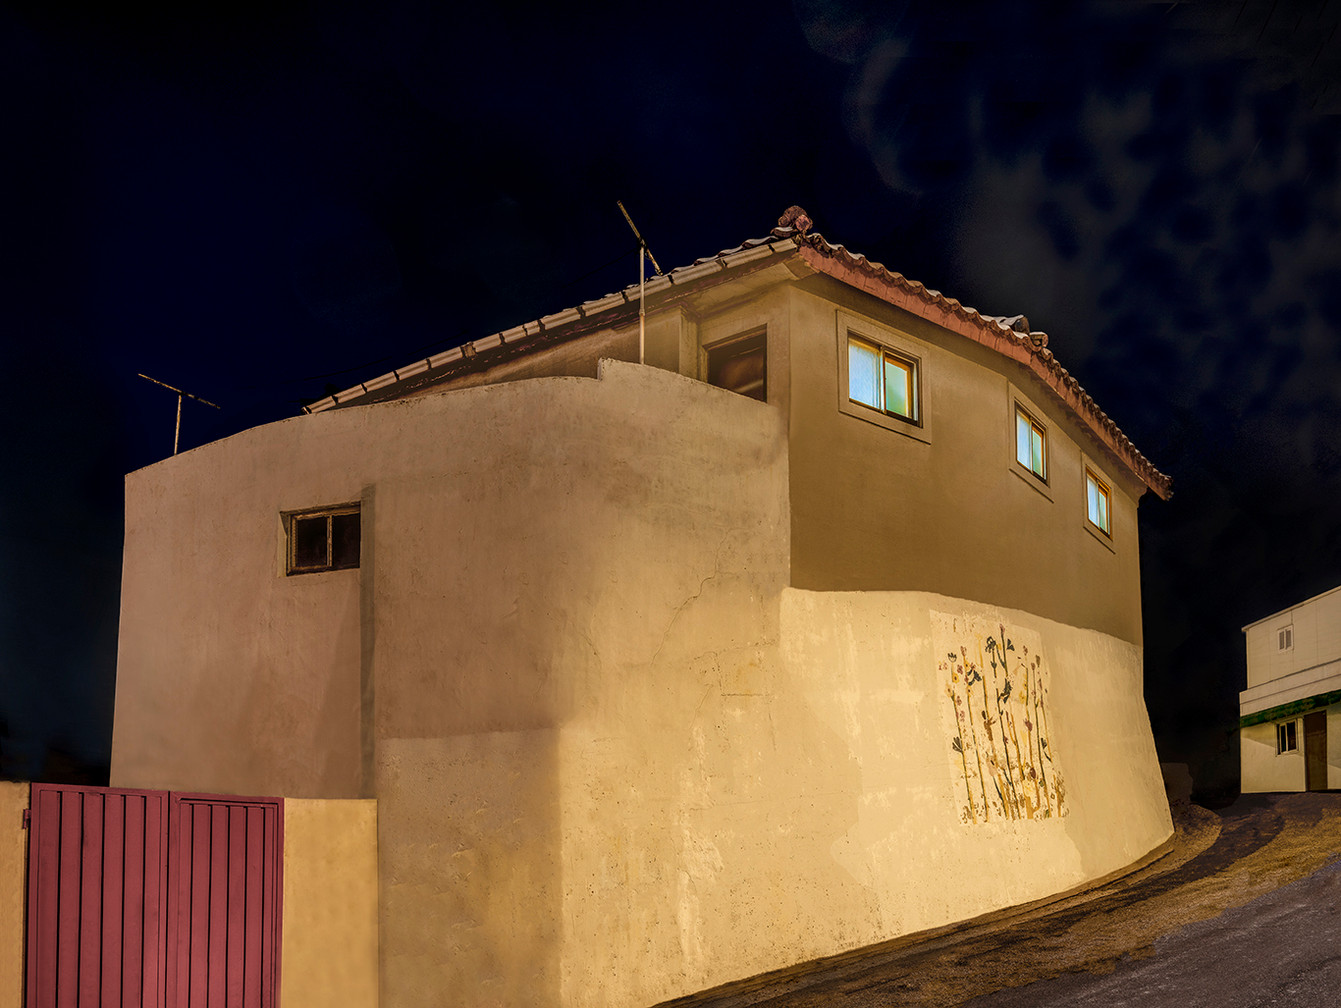 The Houses at Night #07